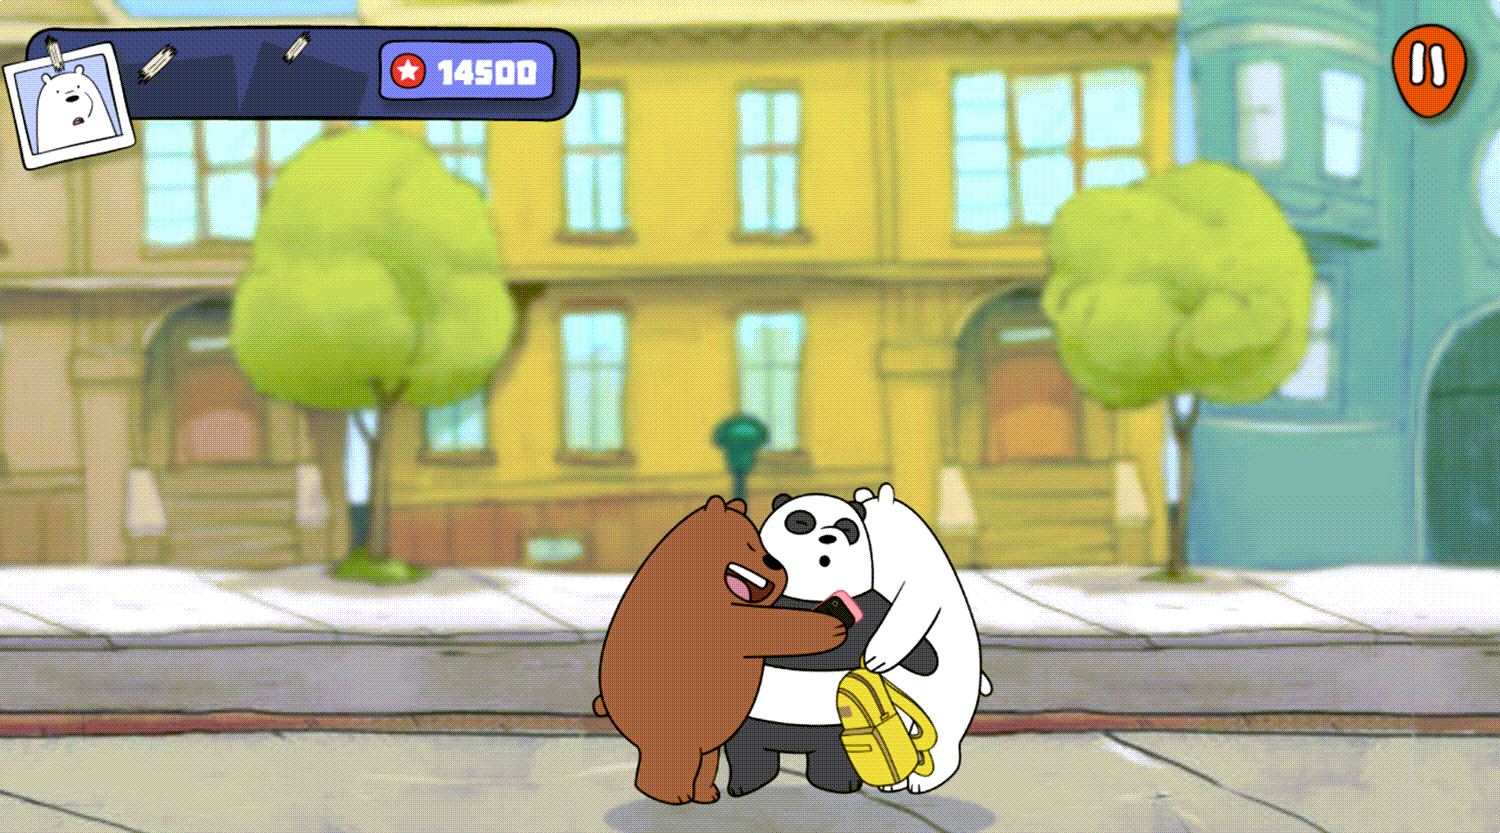 We Bare Bears Feathered Chase Game Beat Screenshot.